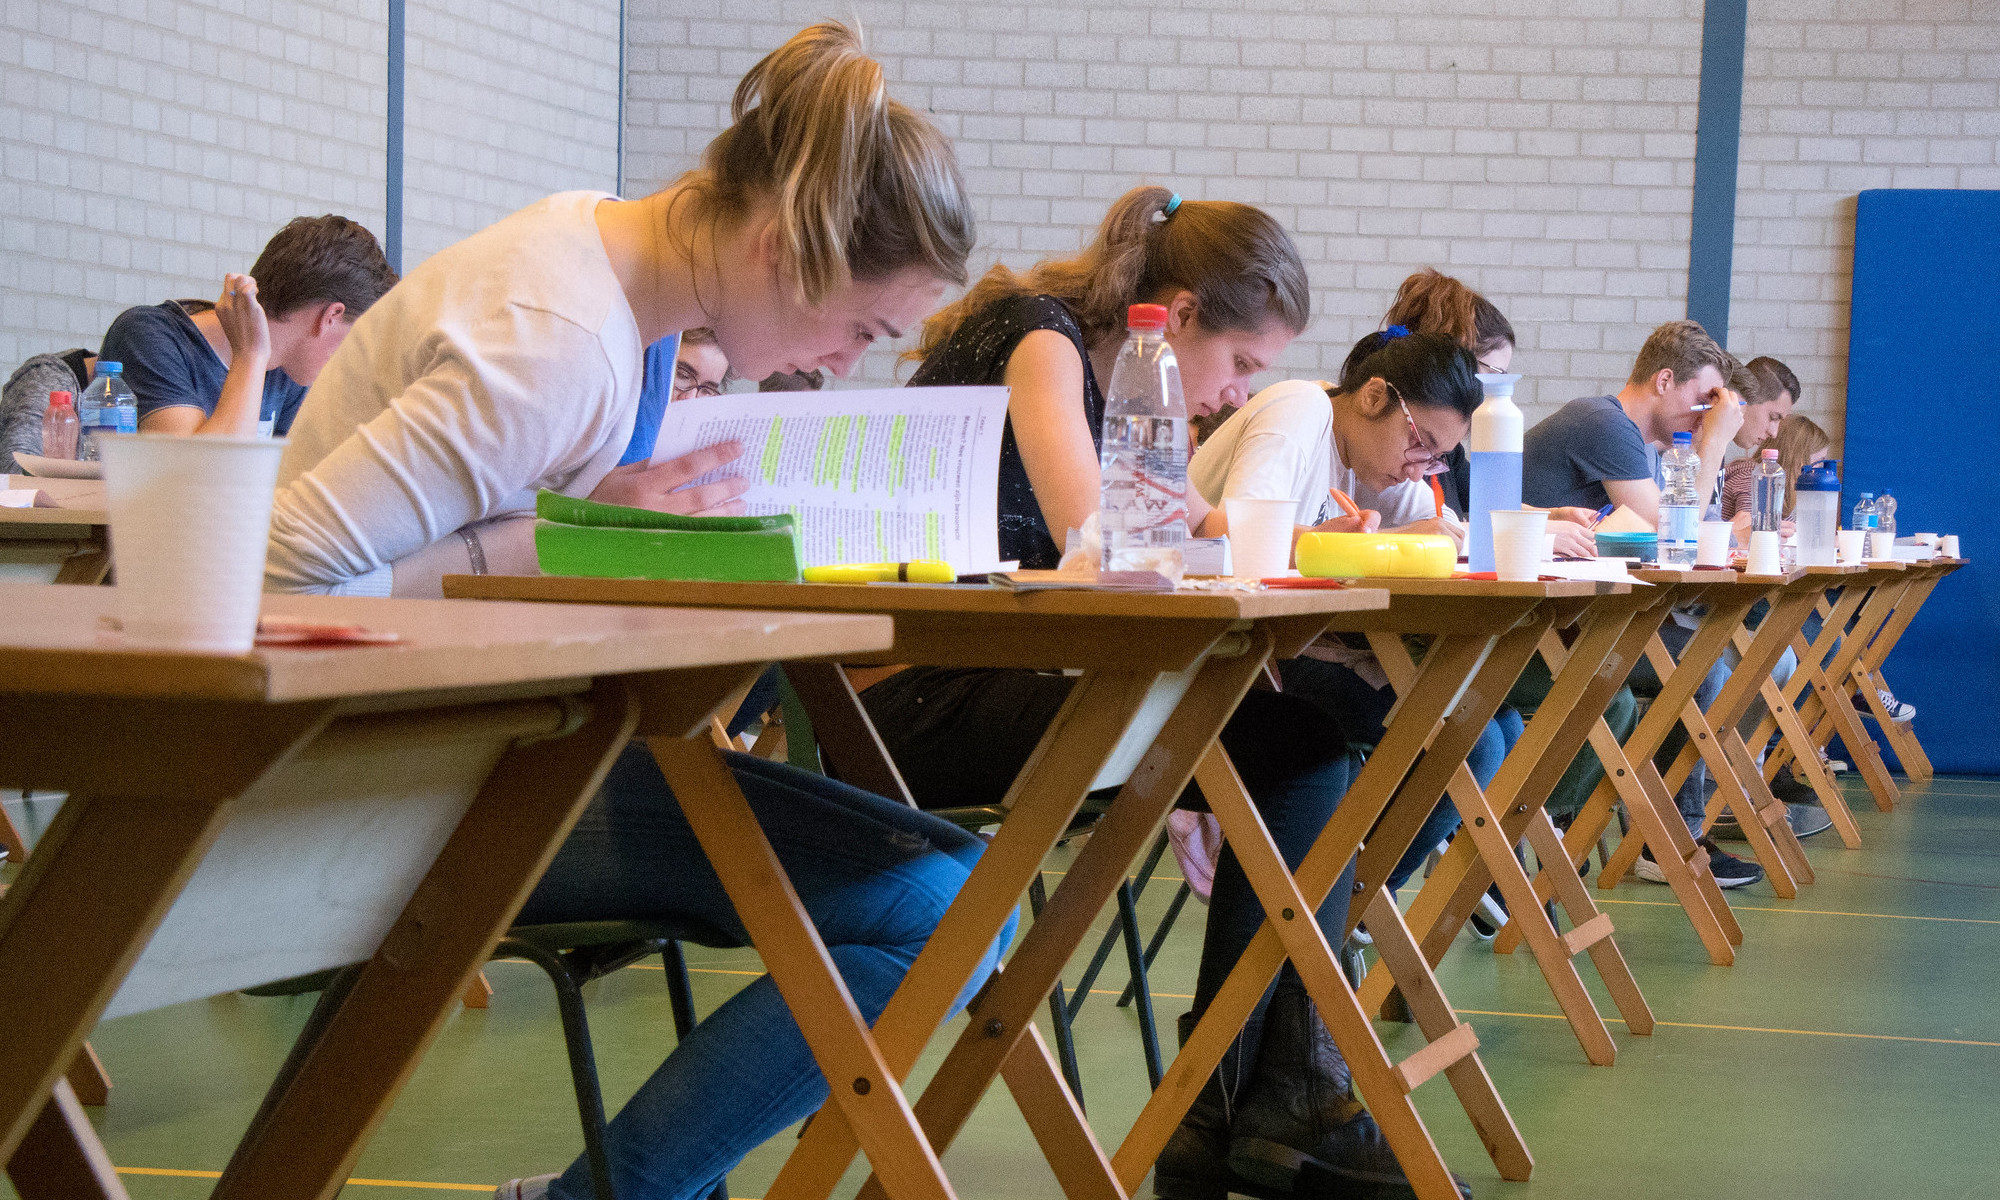 Photo : Examen 2017 CC-by-nc-nd par Frans Peteers https://flic.kr/p/U6kx6y